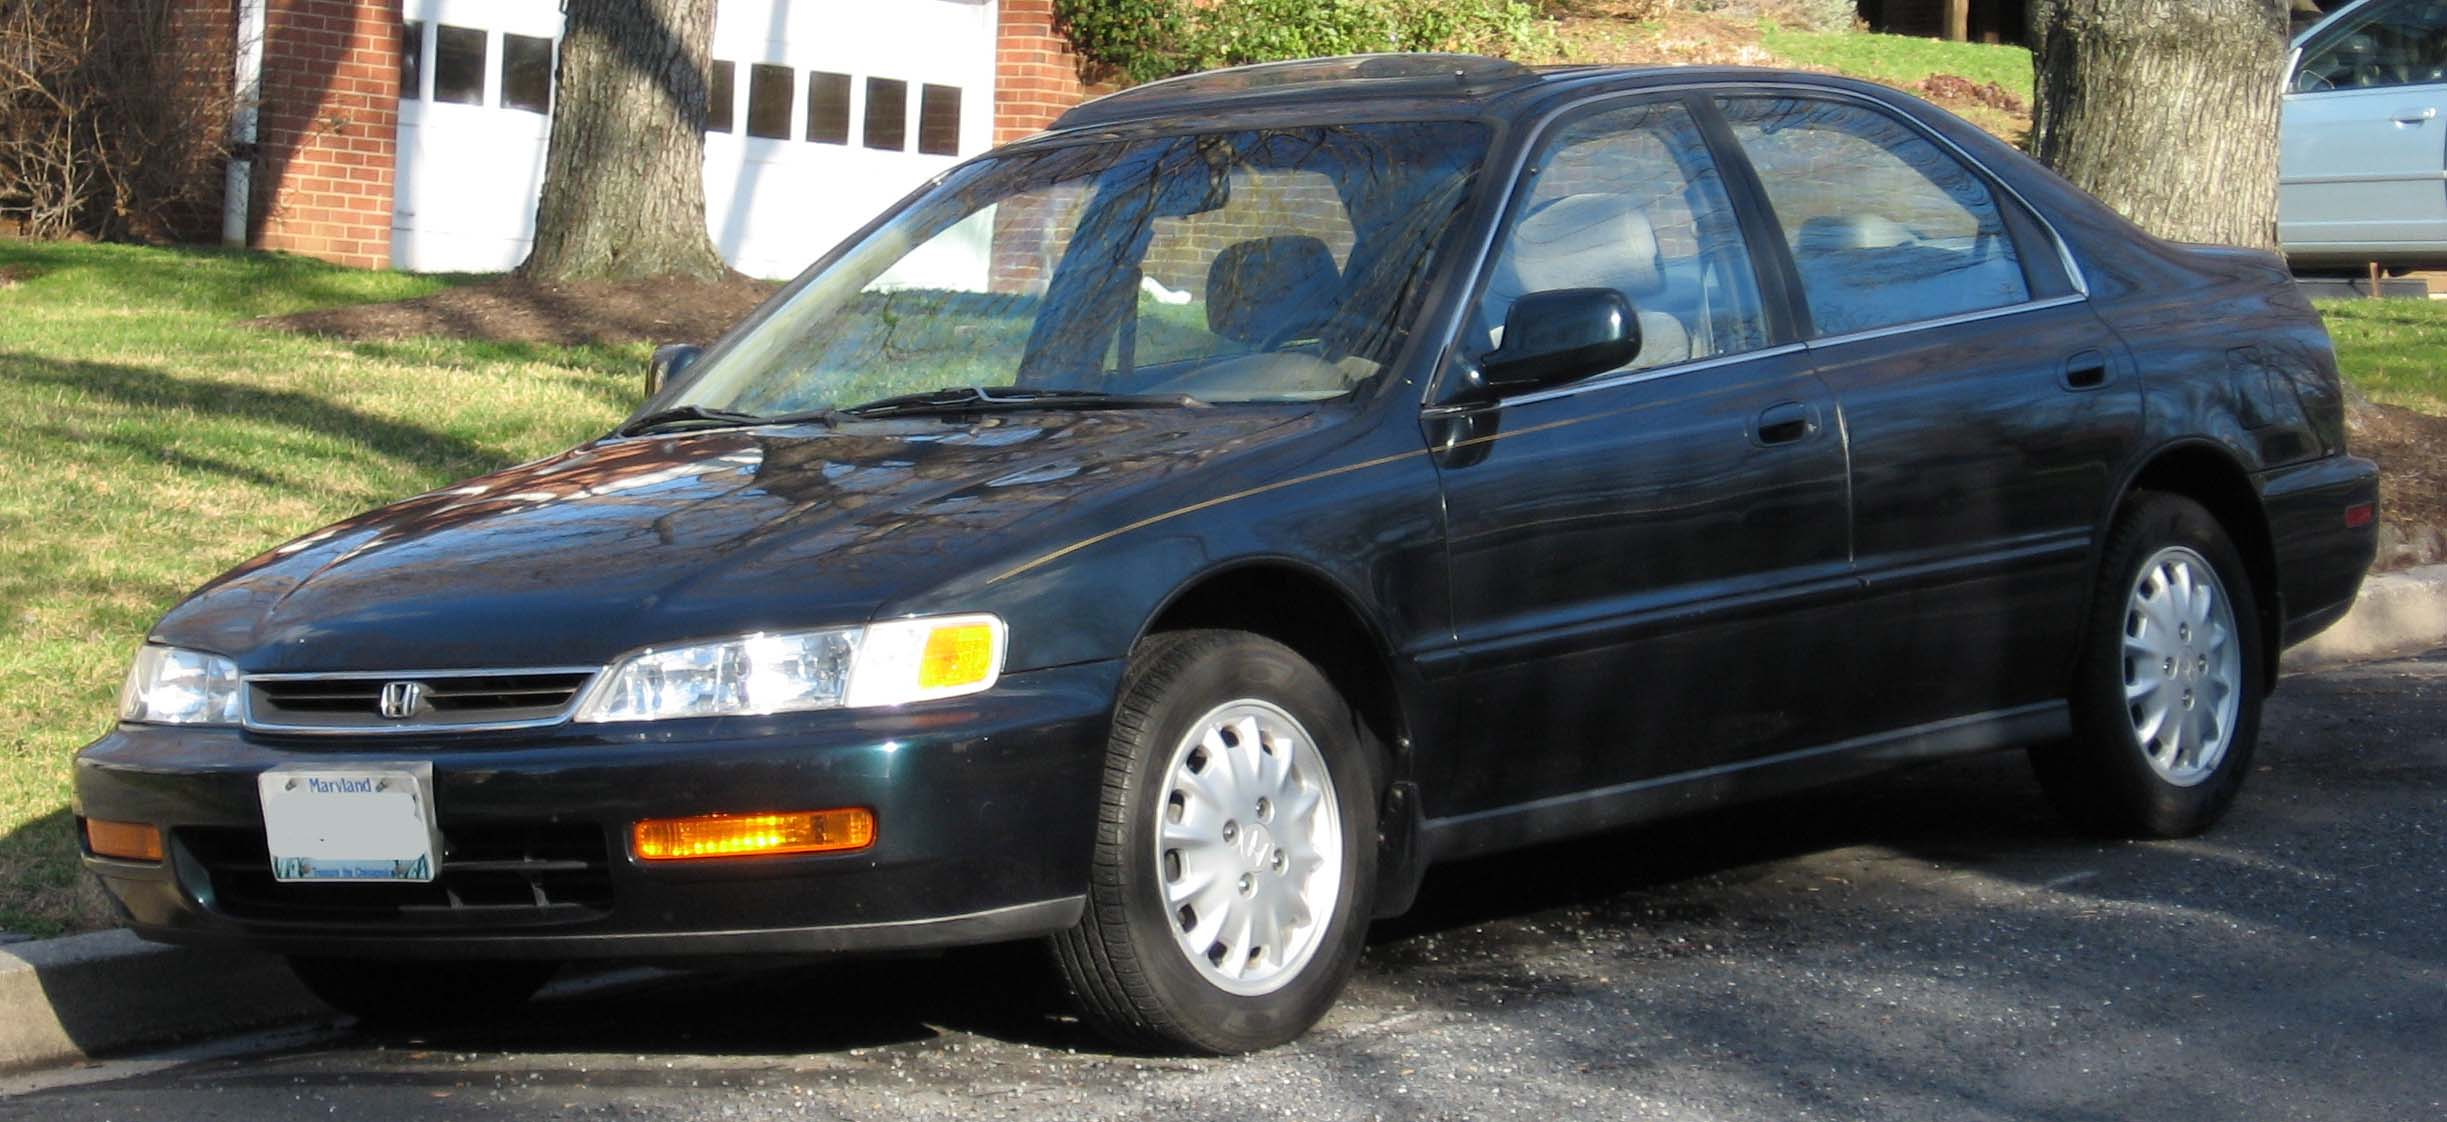 File:5th-Honda-Accord-sedan.jpg - Wikimedia Commons